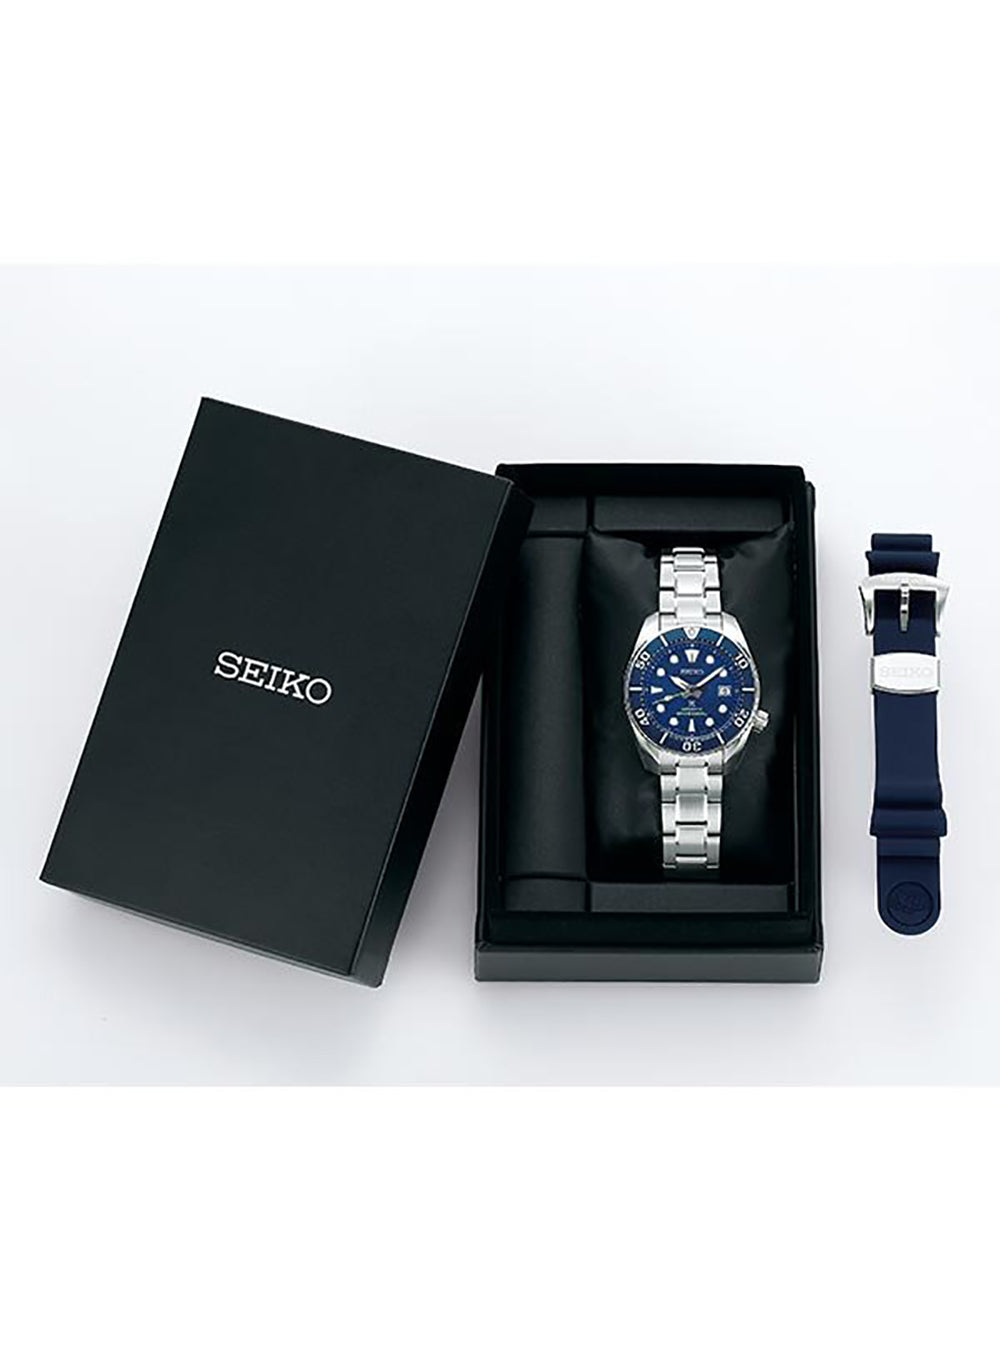 SEIKO PROSPEX JAPAN COLLECTION 2020 LIMITED EDITION SBDC113 MADE IN JAPAN JDM